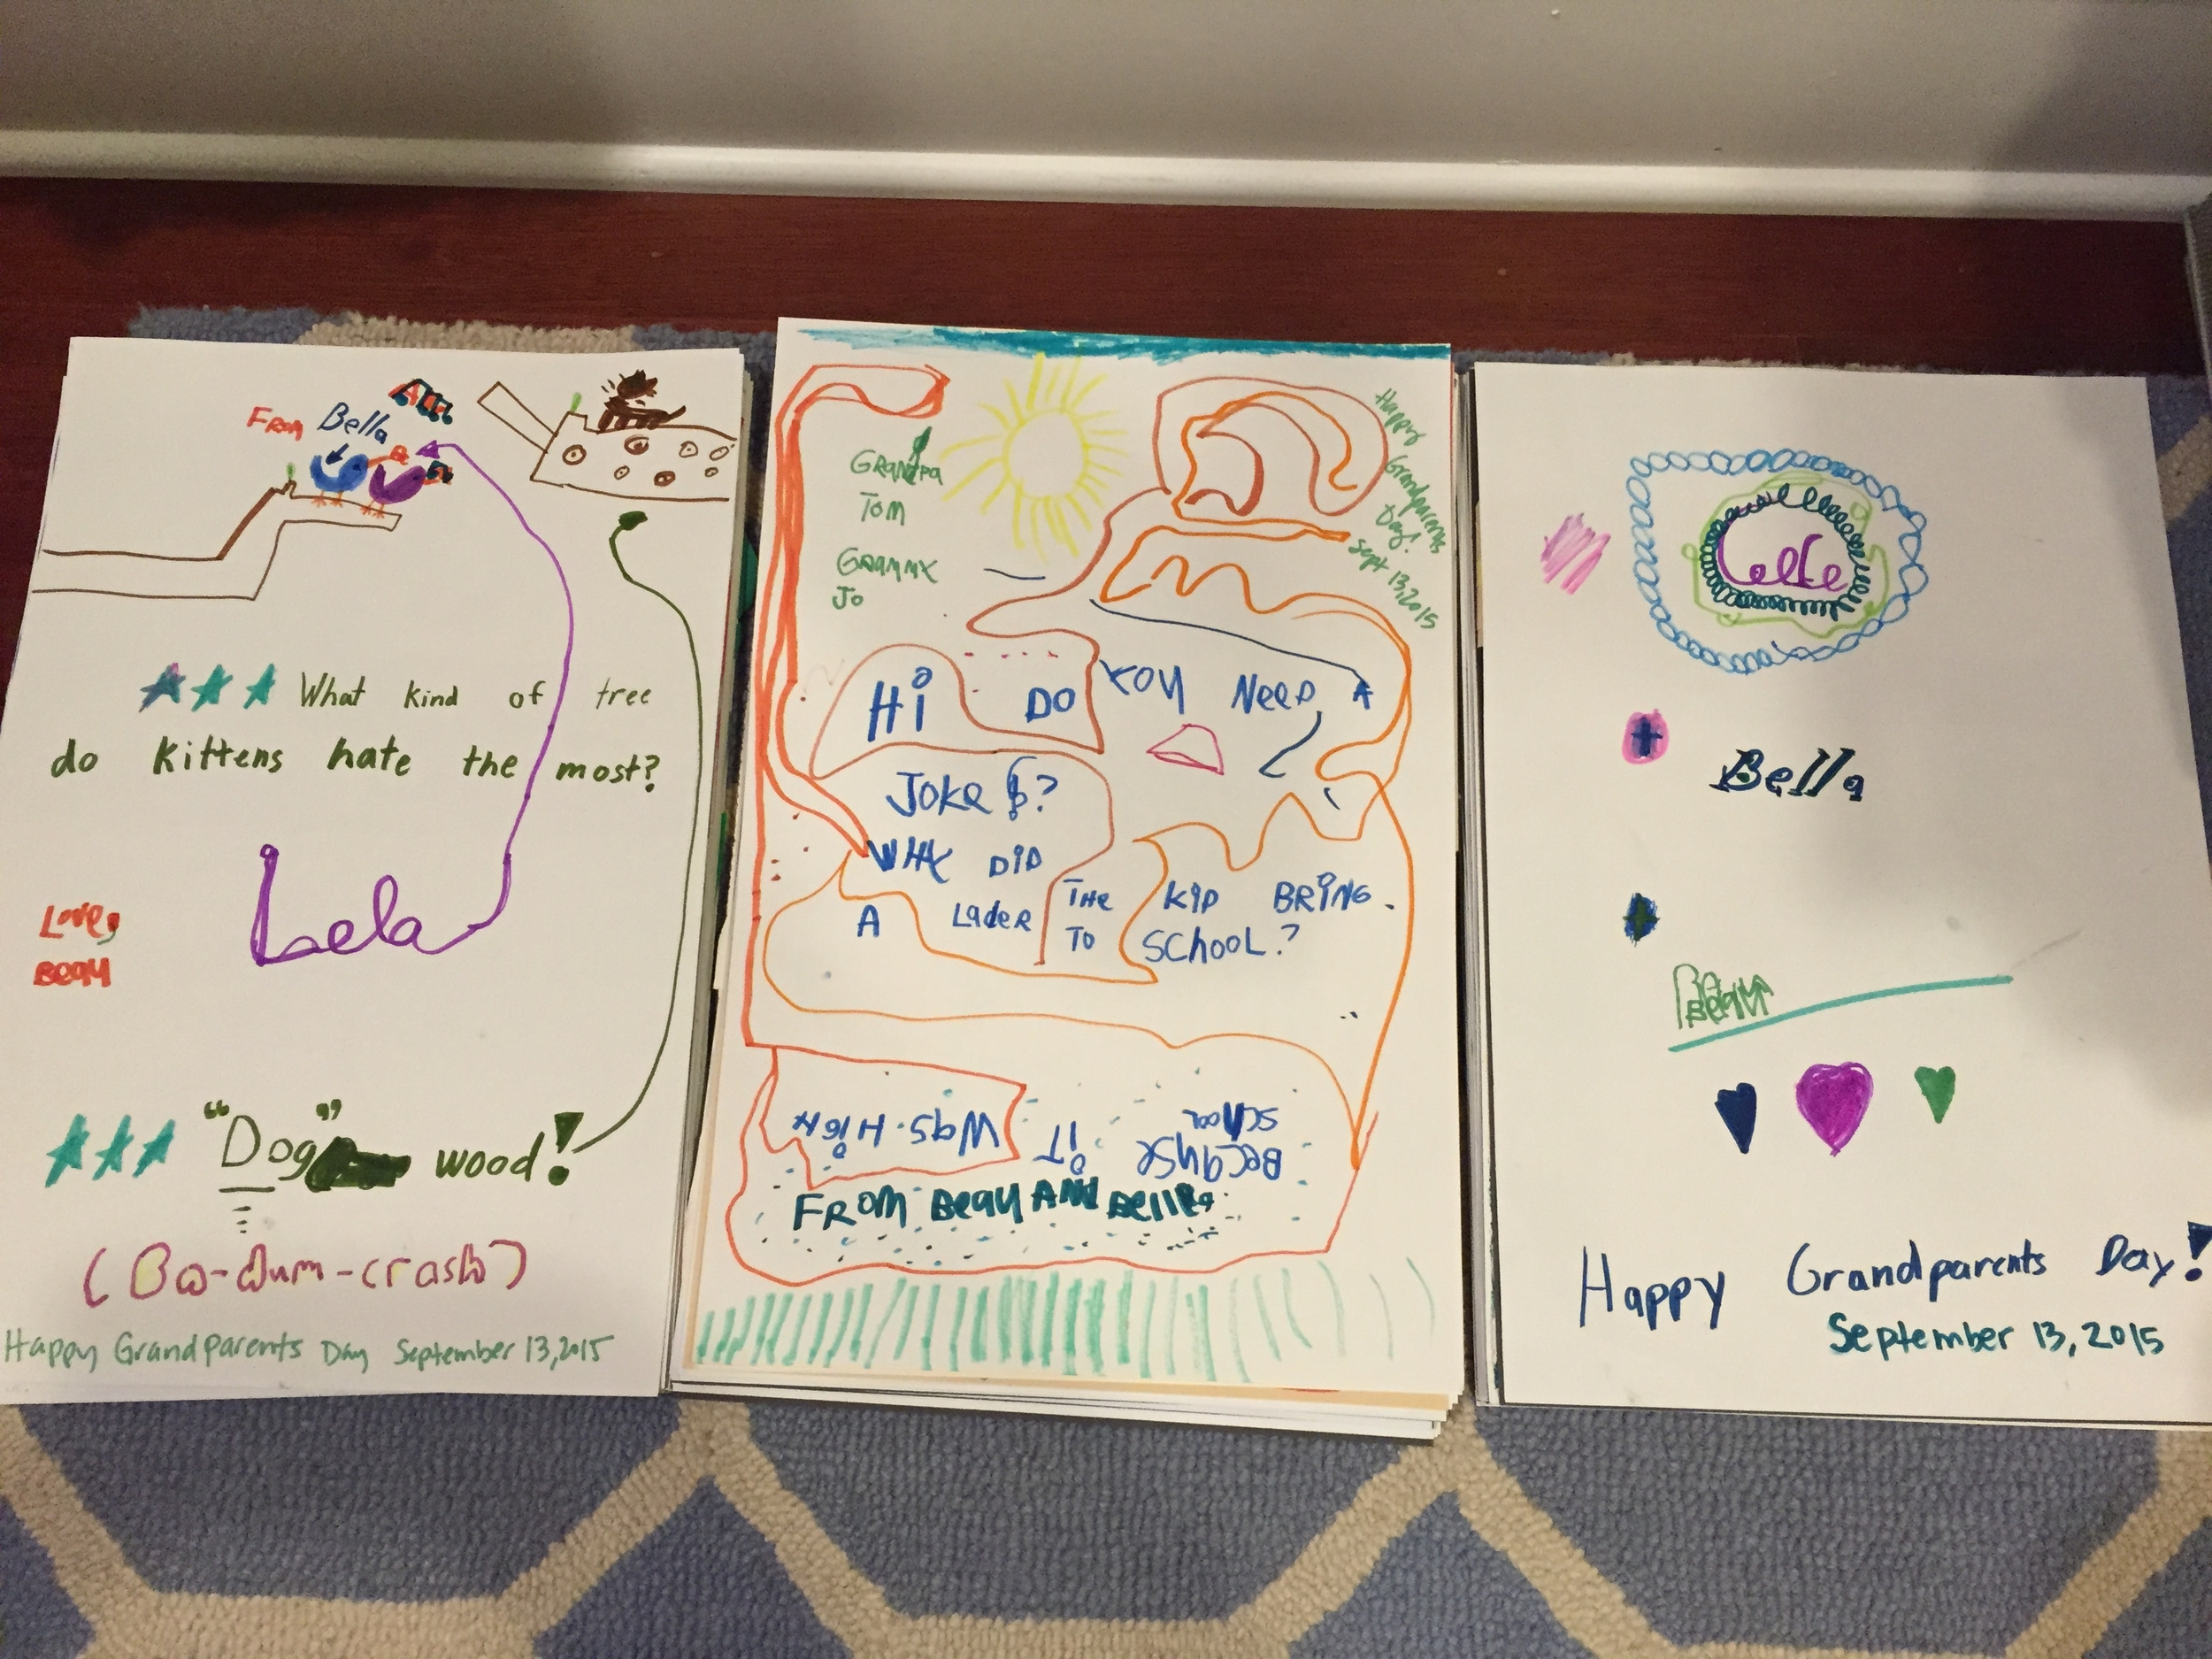 """The final products - One for Lola with a joke and a """"Ba-dum-crash"""" after the punchline is delivered. One for Grandpa Tom & Grammy Jo, also with a joke but the punchline is revealed upside down. And one for CeCe with colors and esthetics solely based on the names on the markers."""